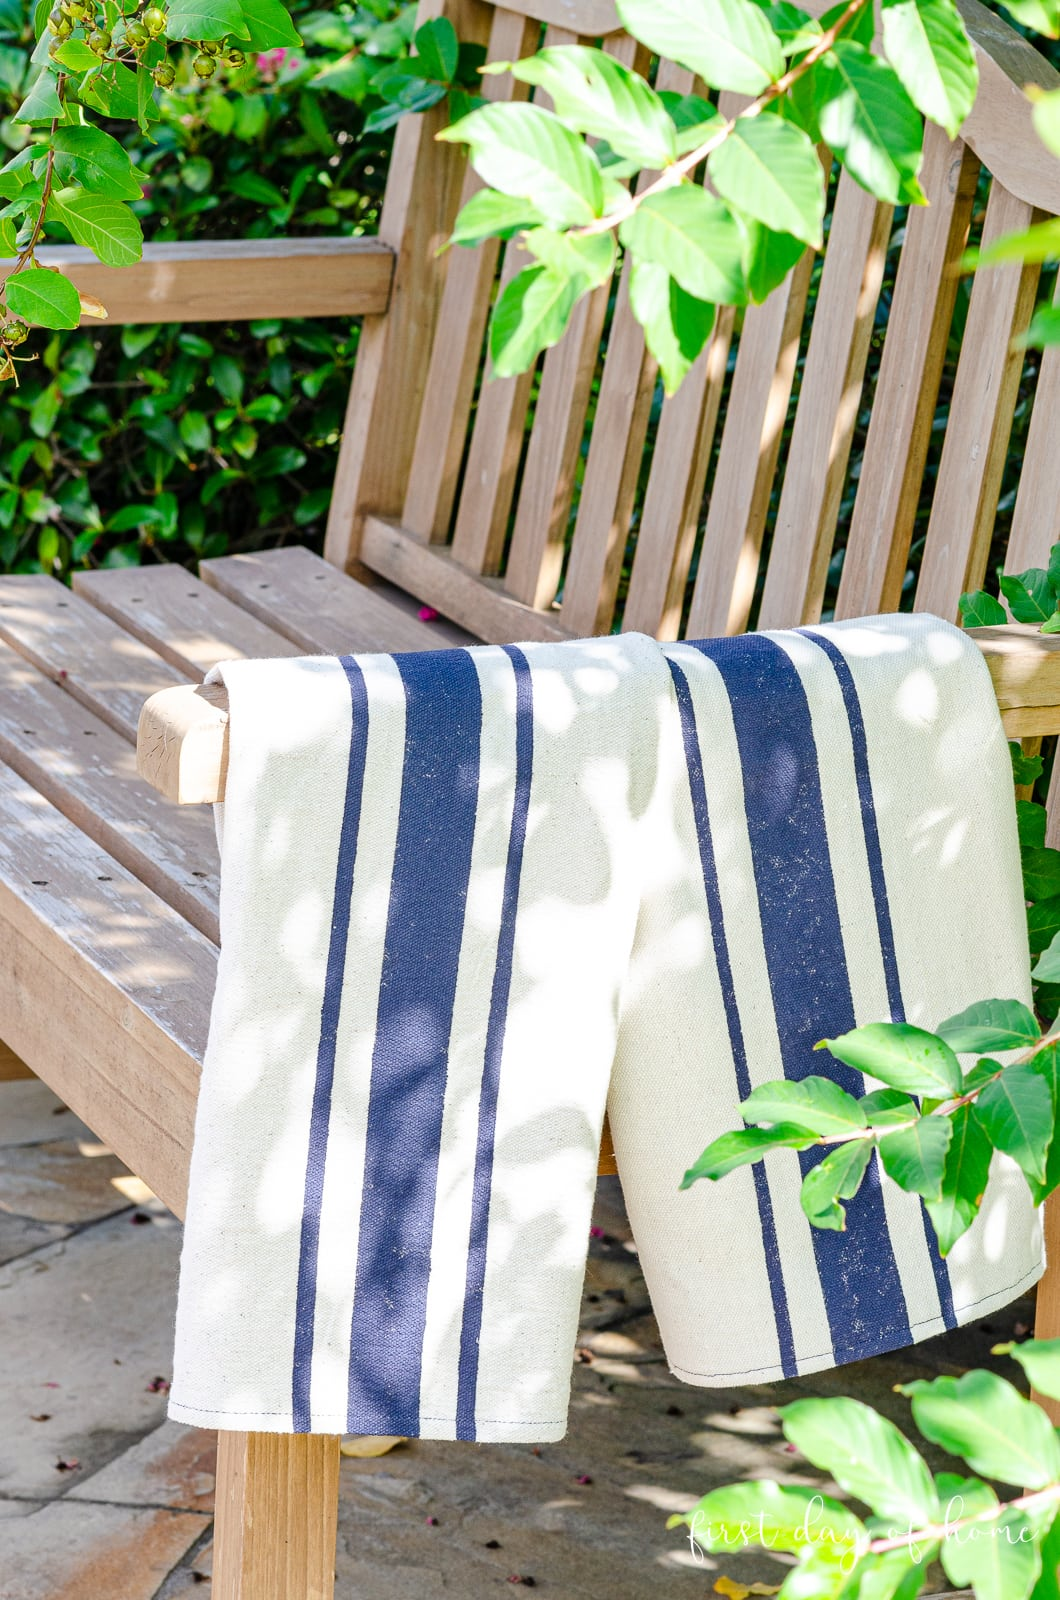 Flour sack dish towels on rustic farmhouse park bench